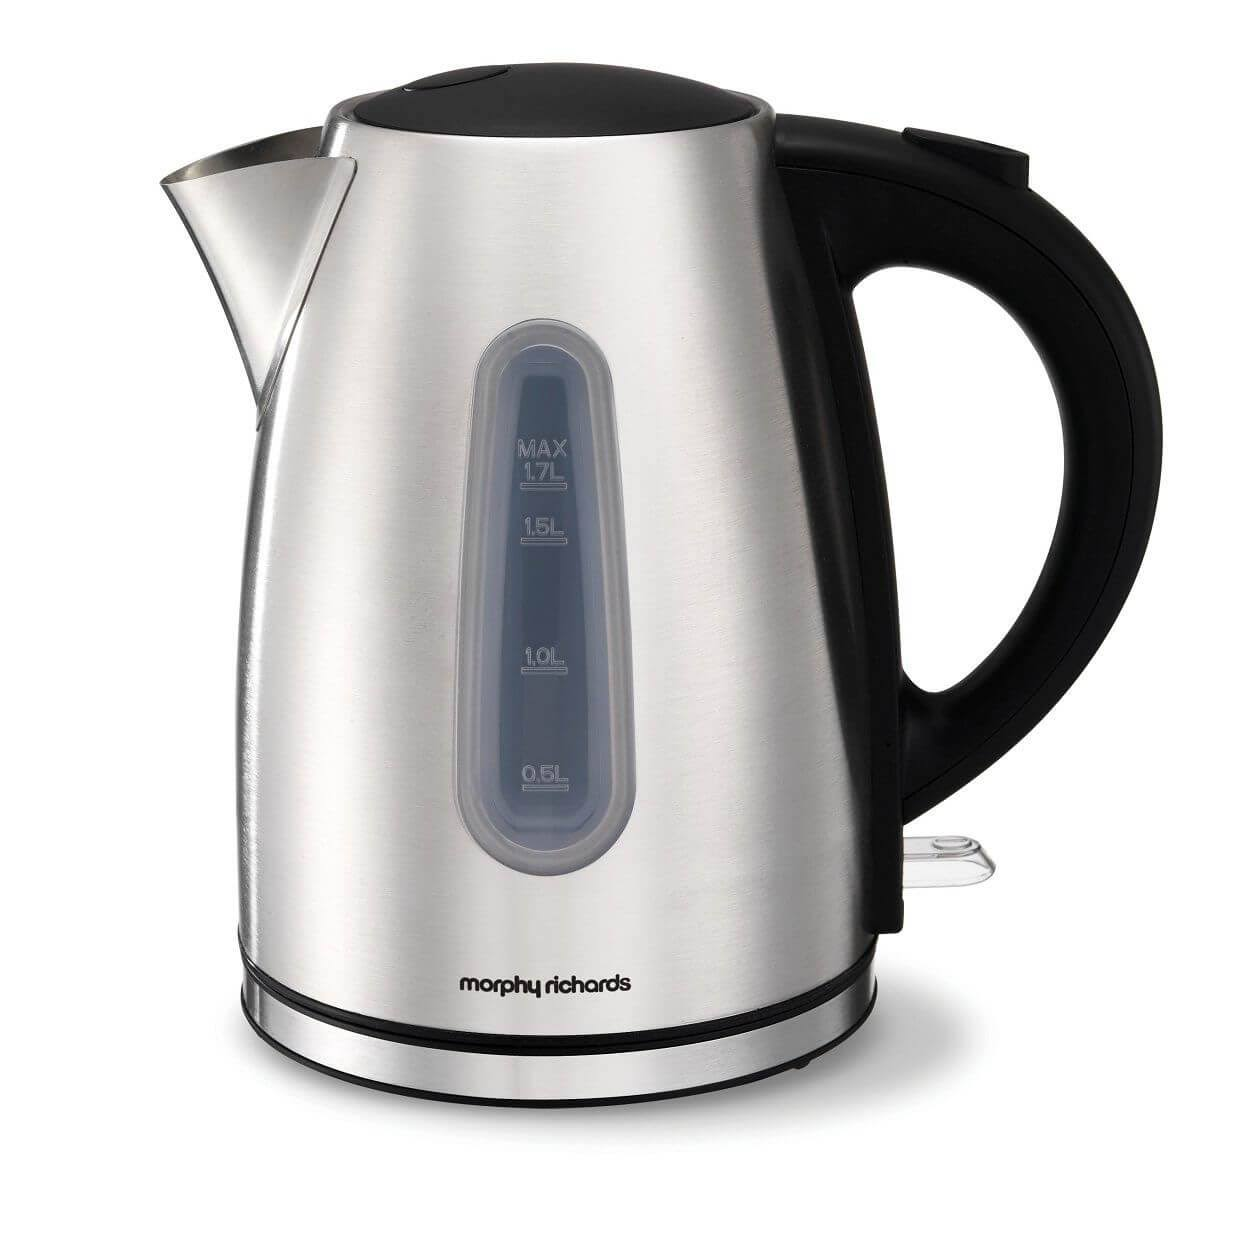 Morphy Richards 980541, Jug Kettle, Stainless Steel